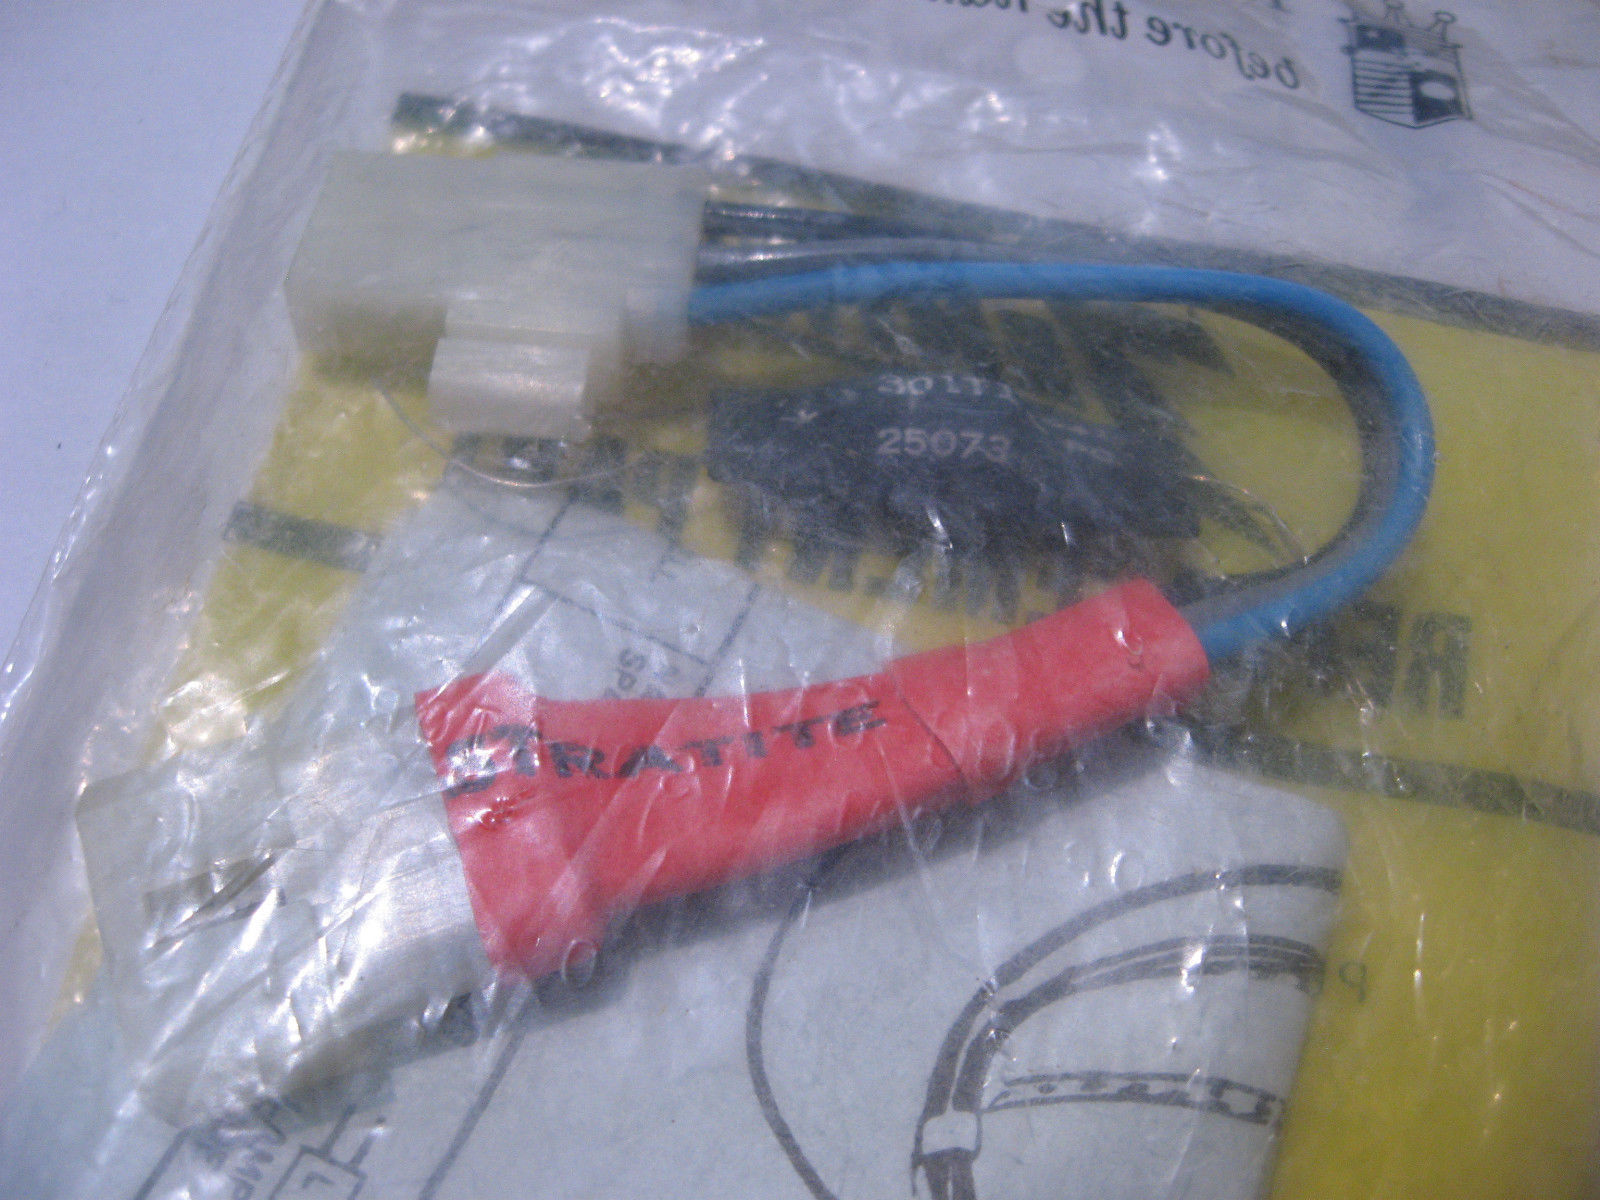 800-617 Zenith Photo-Optical Isolator Television Replacement Part TV Vintage